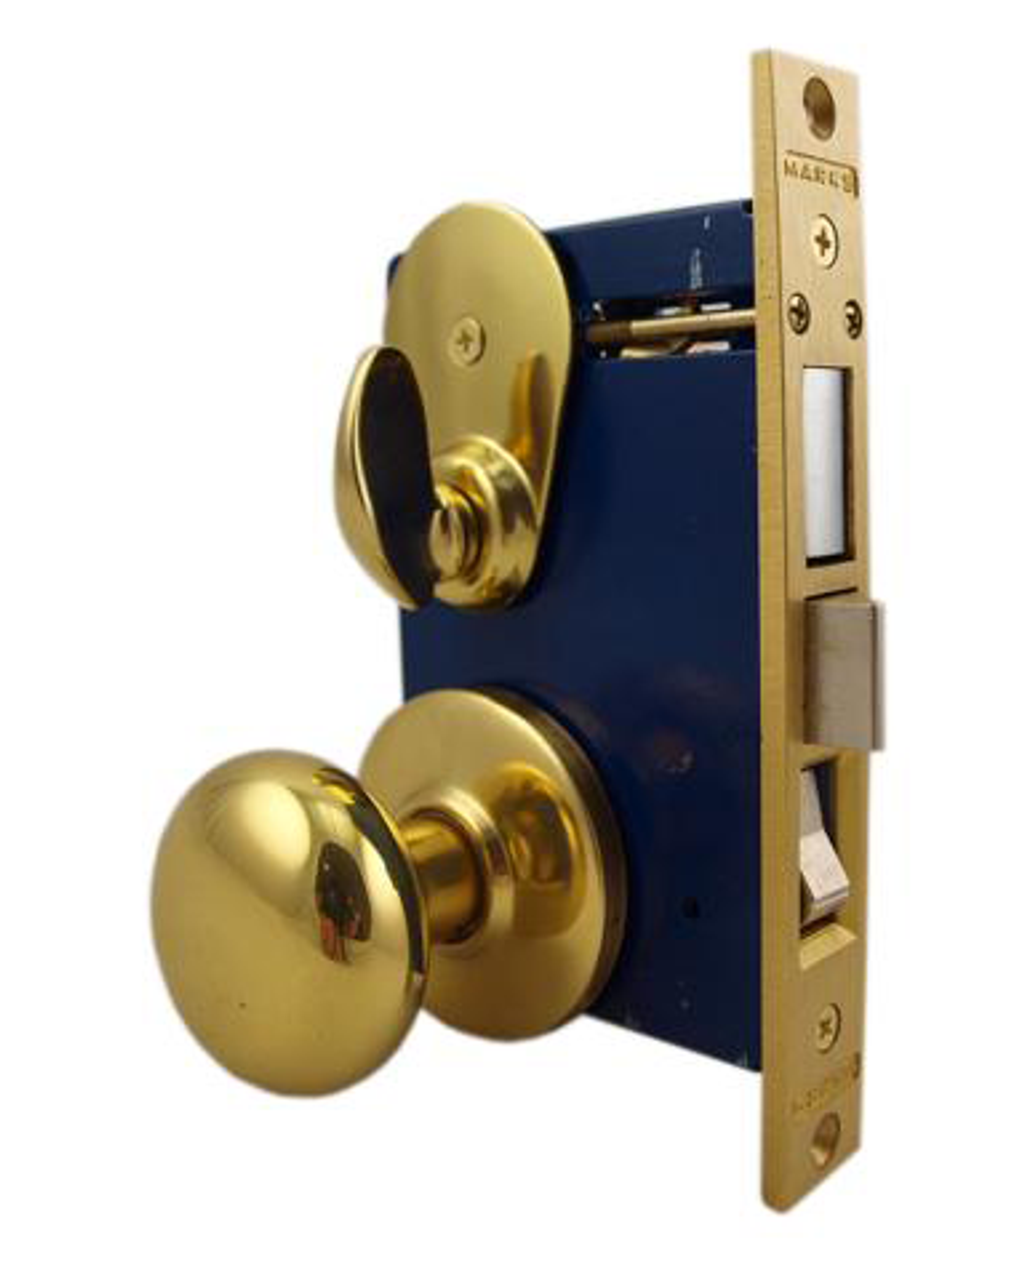 Marks Lock 22 Series 22F Panic Proof Single Cylinder Mortise Lock For Security  Door And Storm